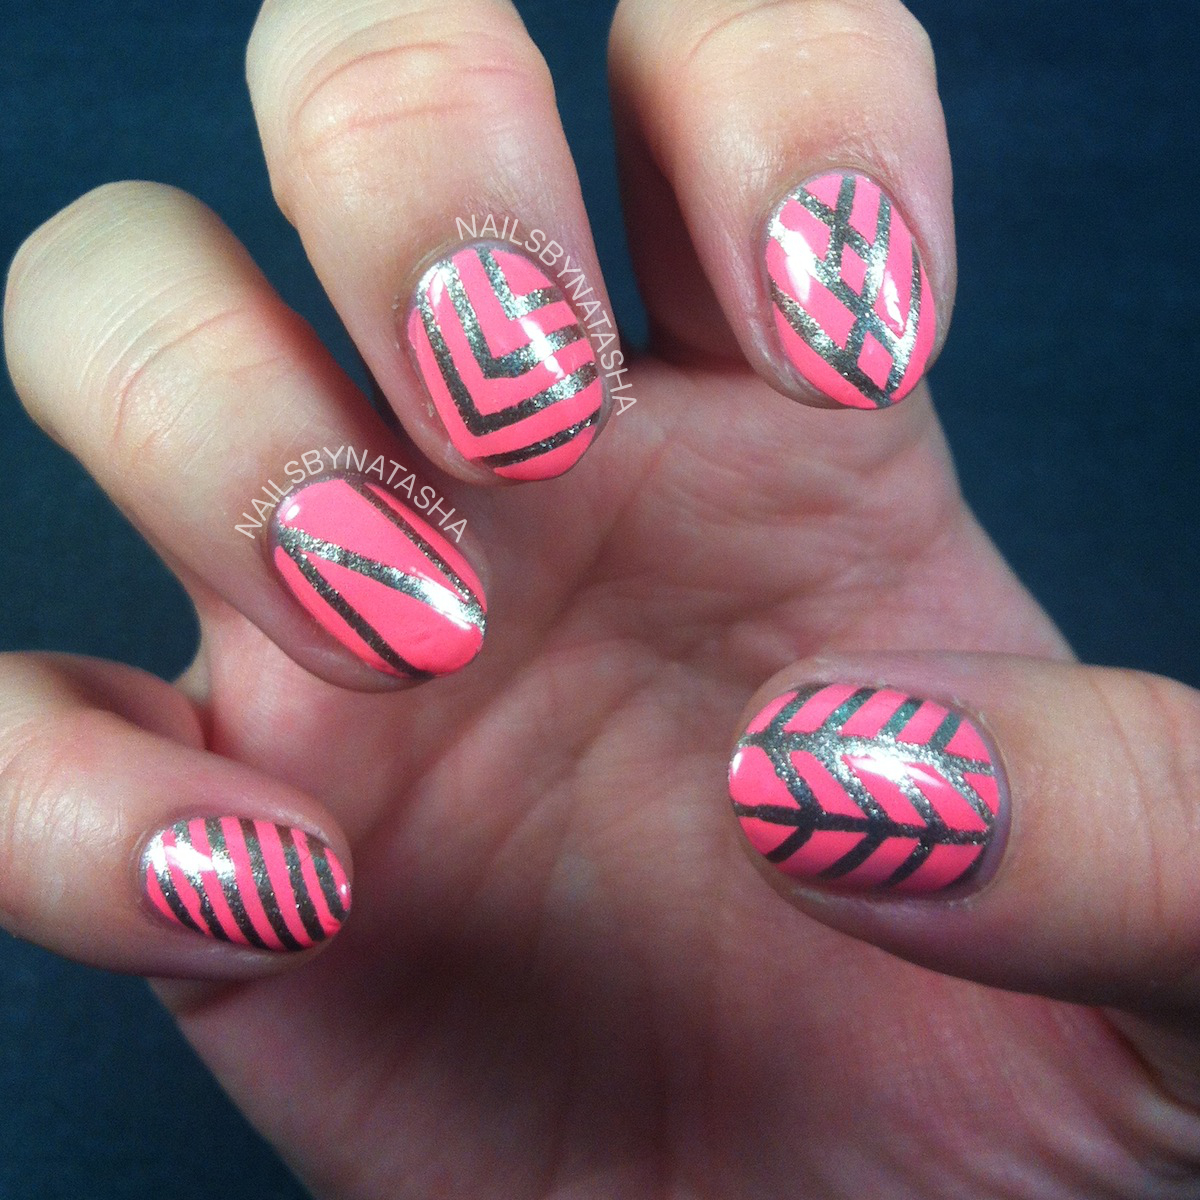 Nail Art Designs Using Striping Tape - To Bend Light